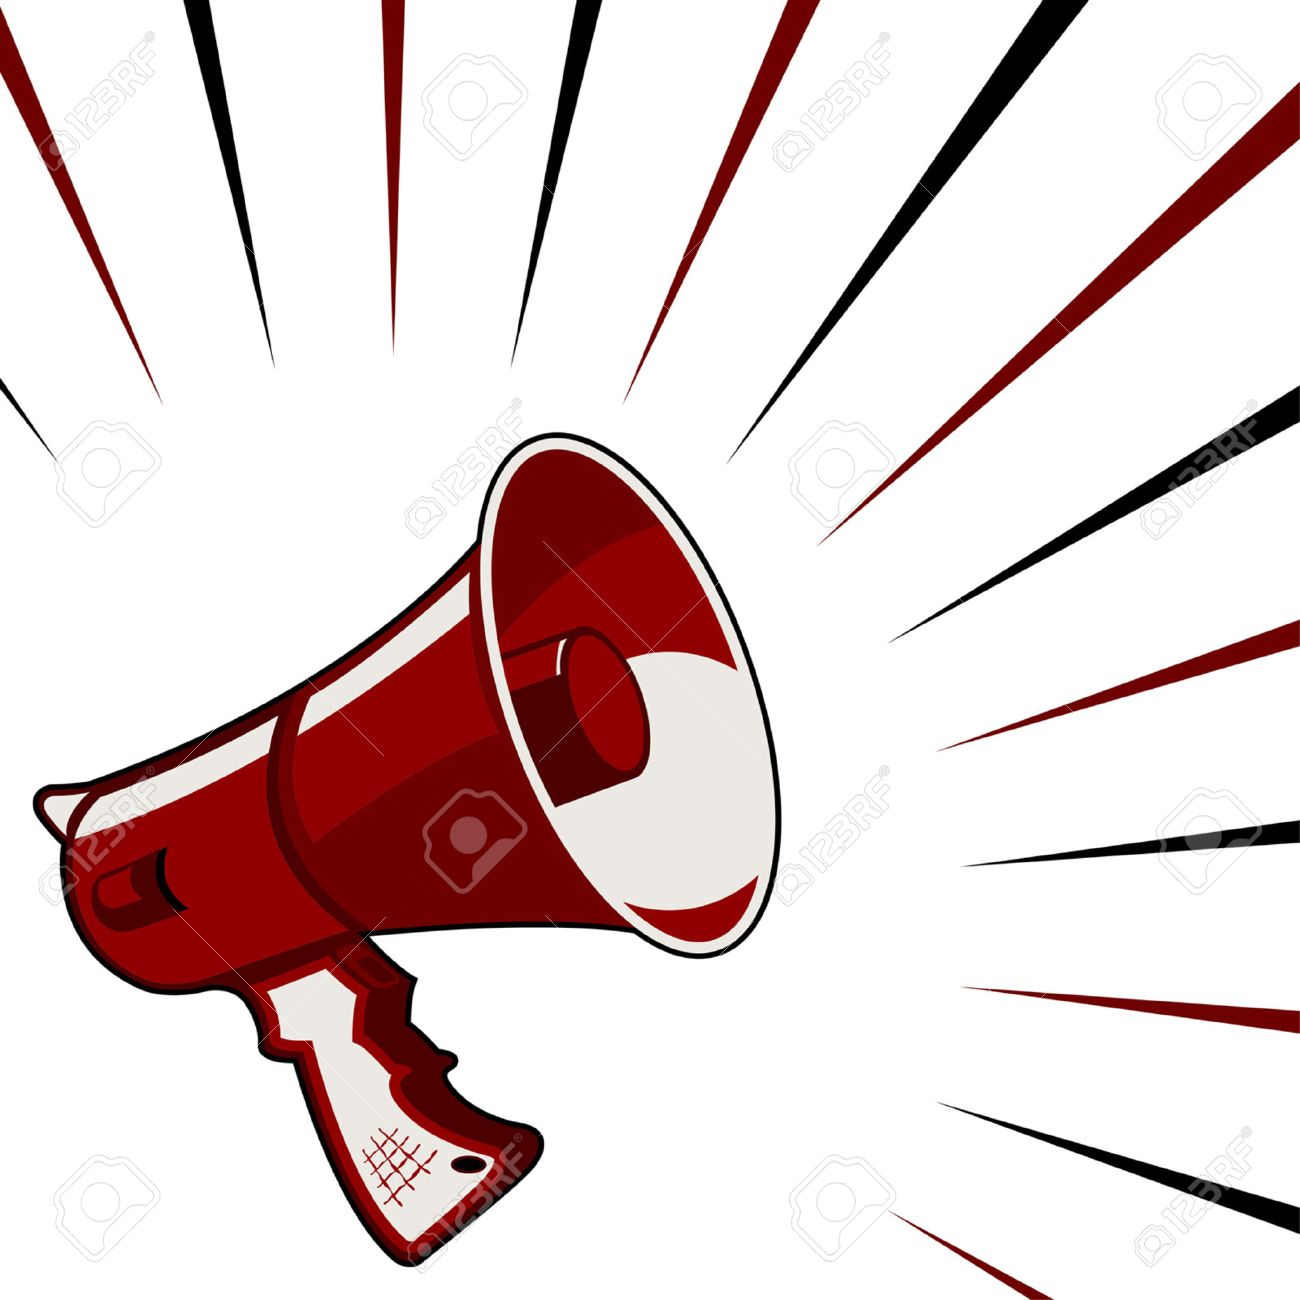 hight resolution of red megaphone announcement over starry square background stock vector 8069024